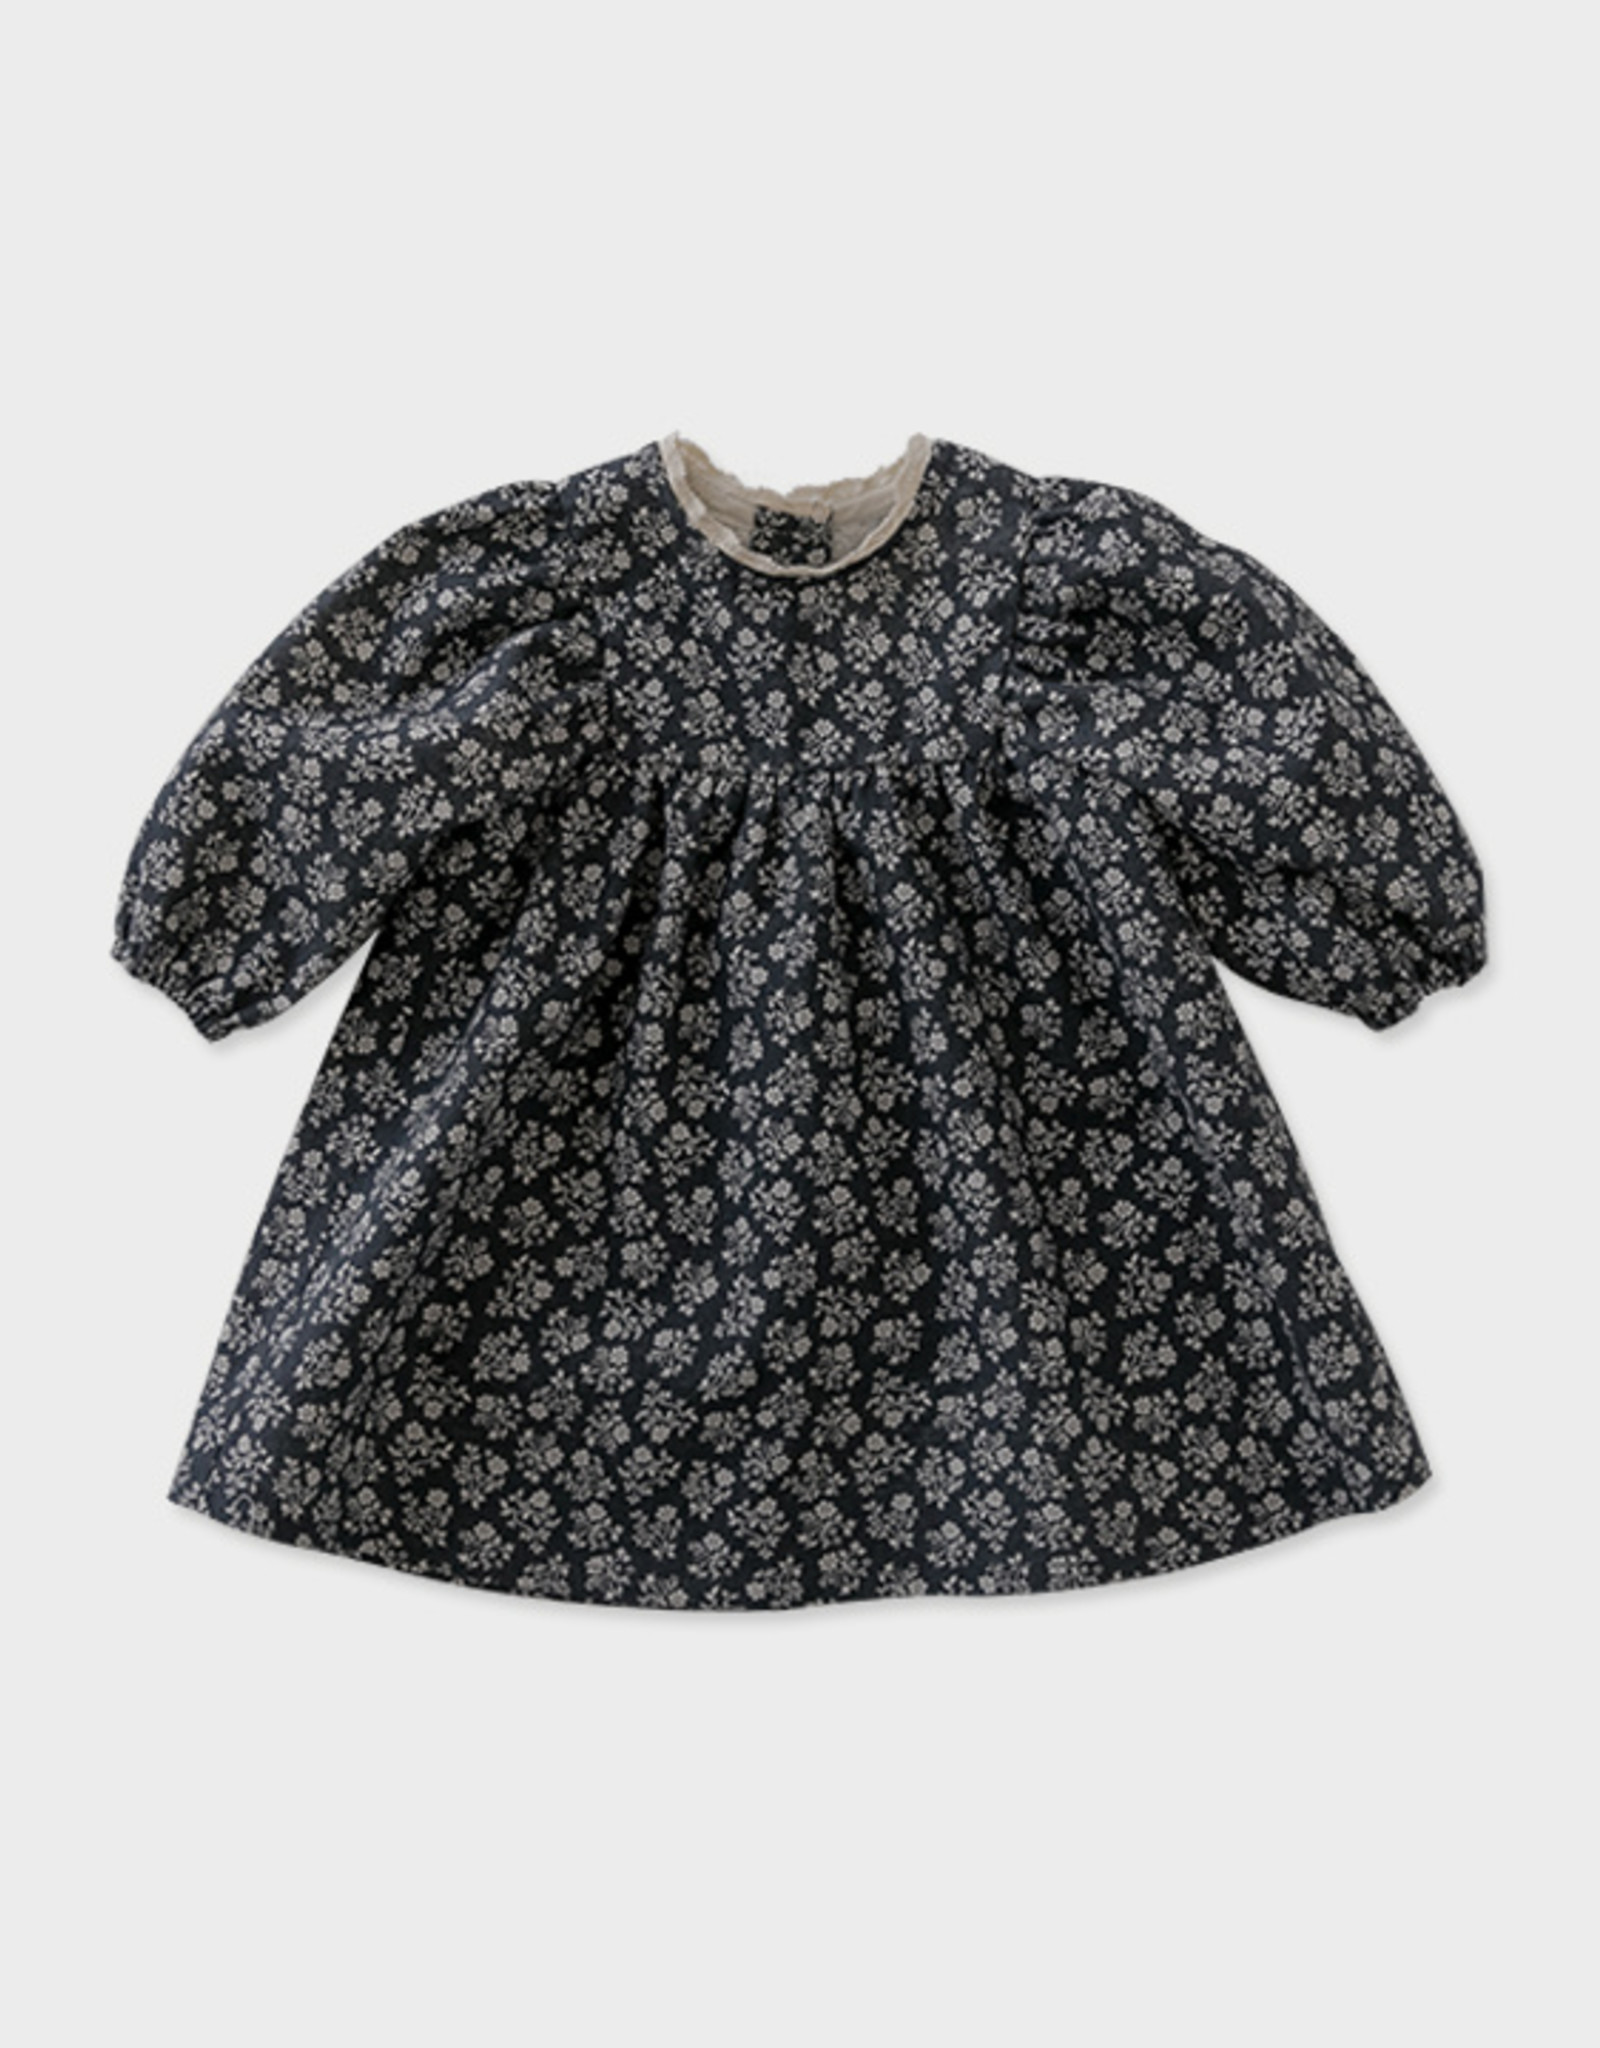 Louisiella Khaleesi baby dress